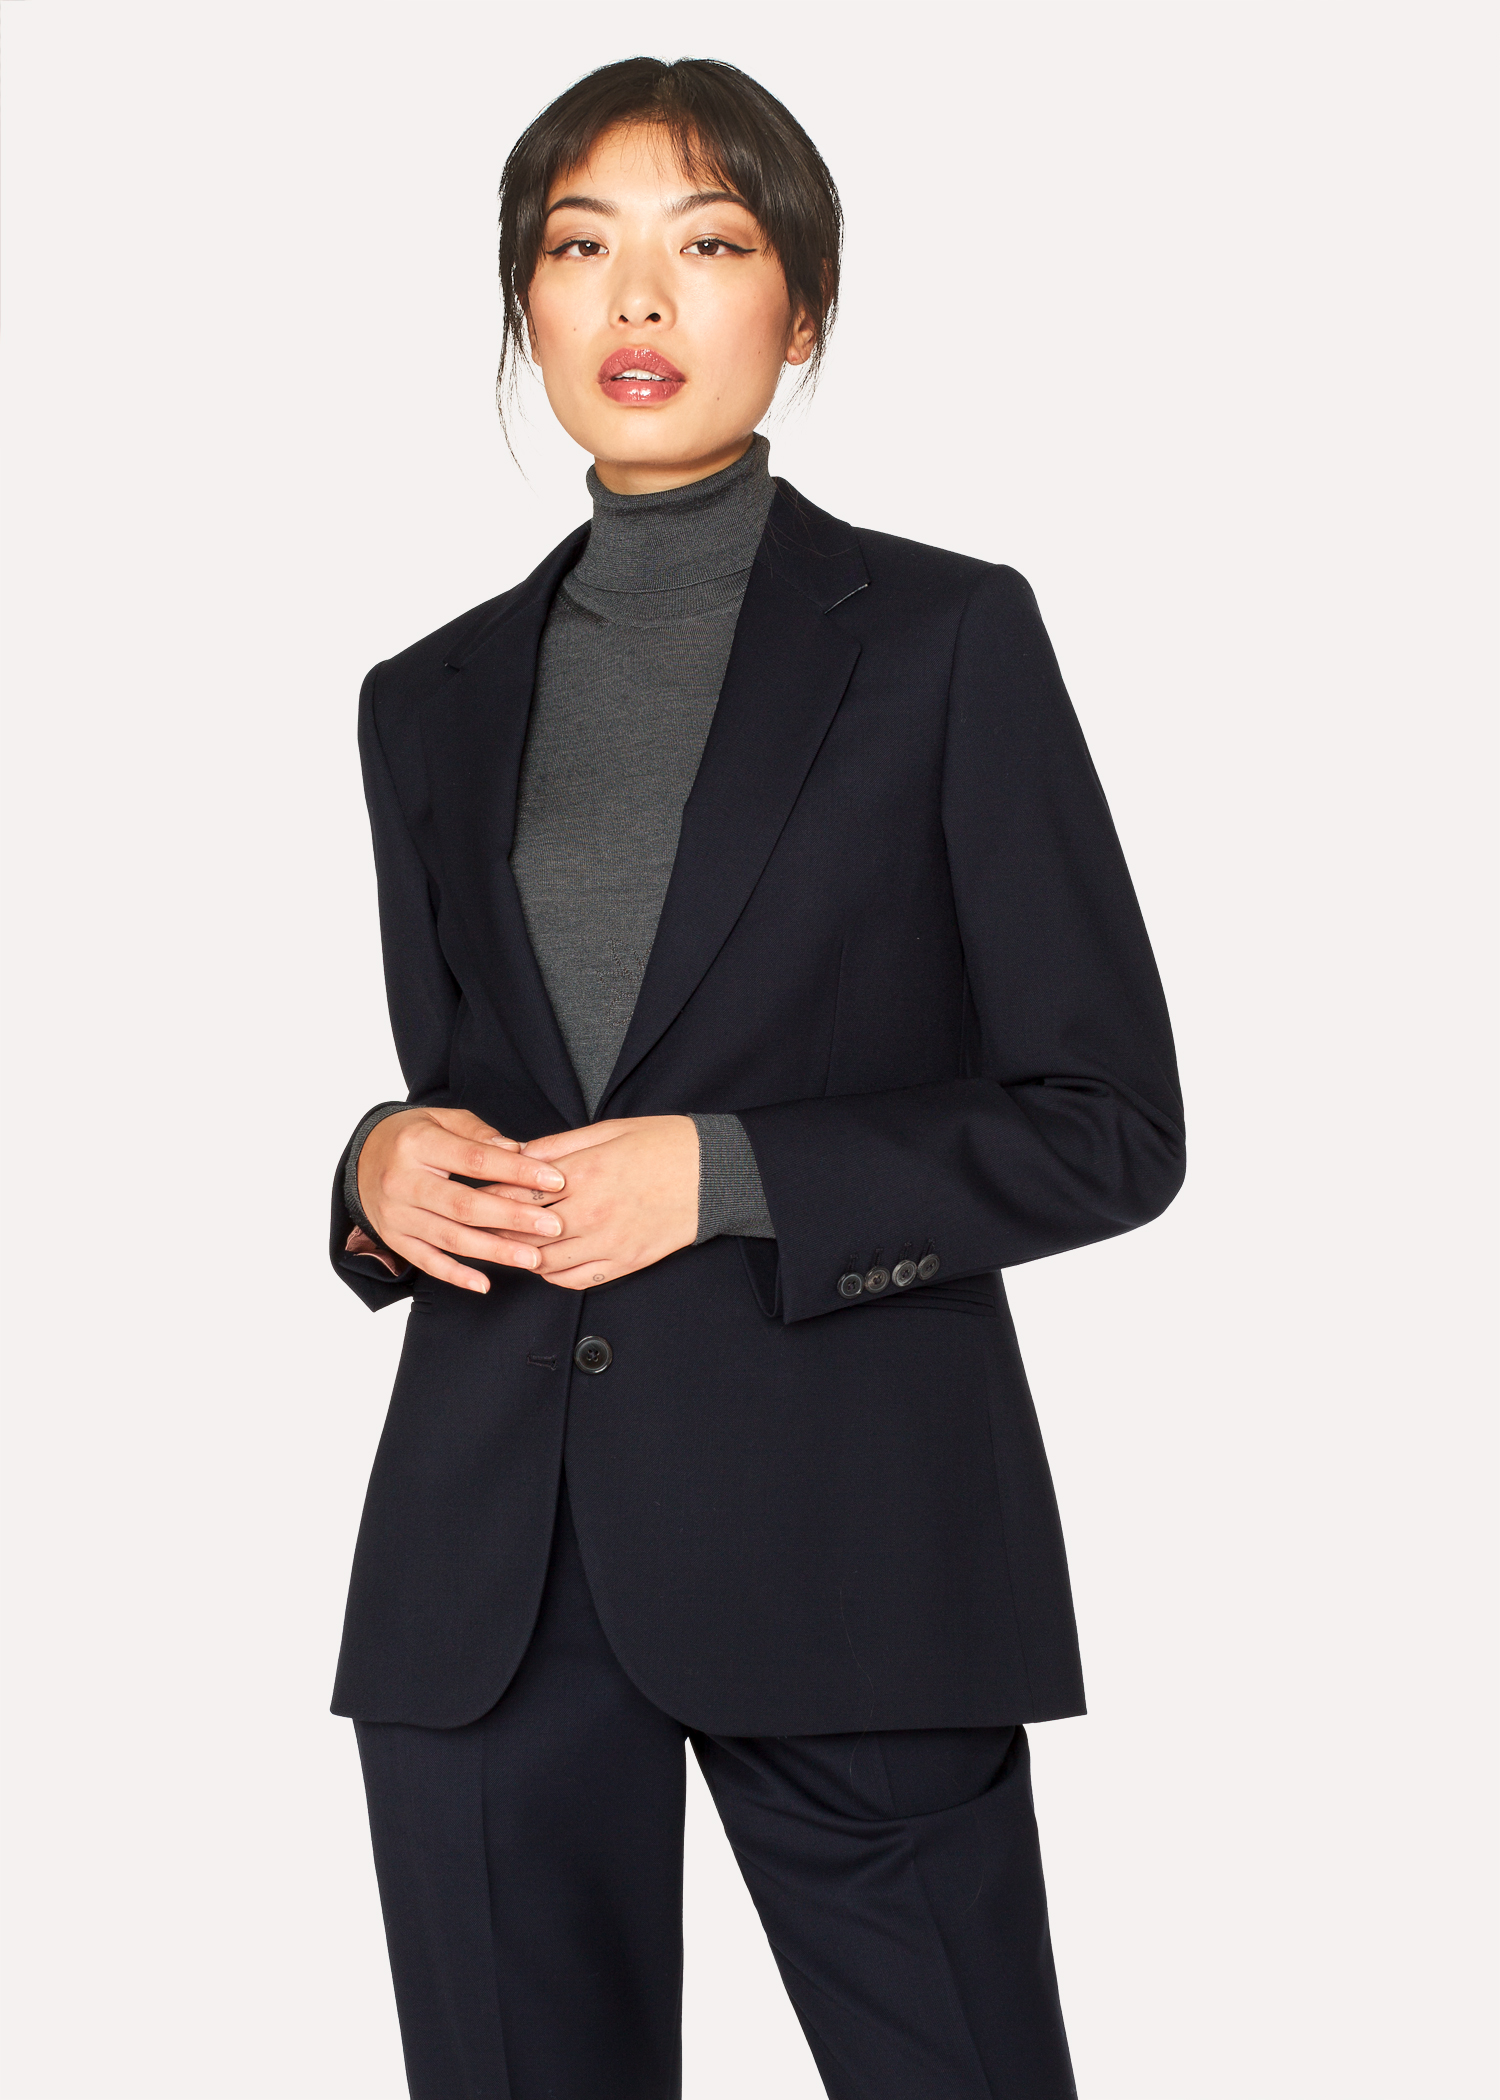 A Suit To Travel In - Women s Dark Navy Two-Button Wool Blazer Paul Smith 60f1778241